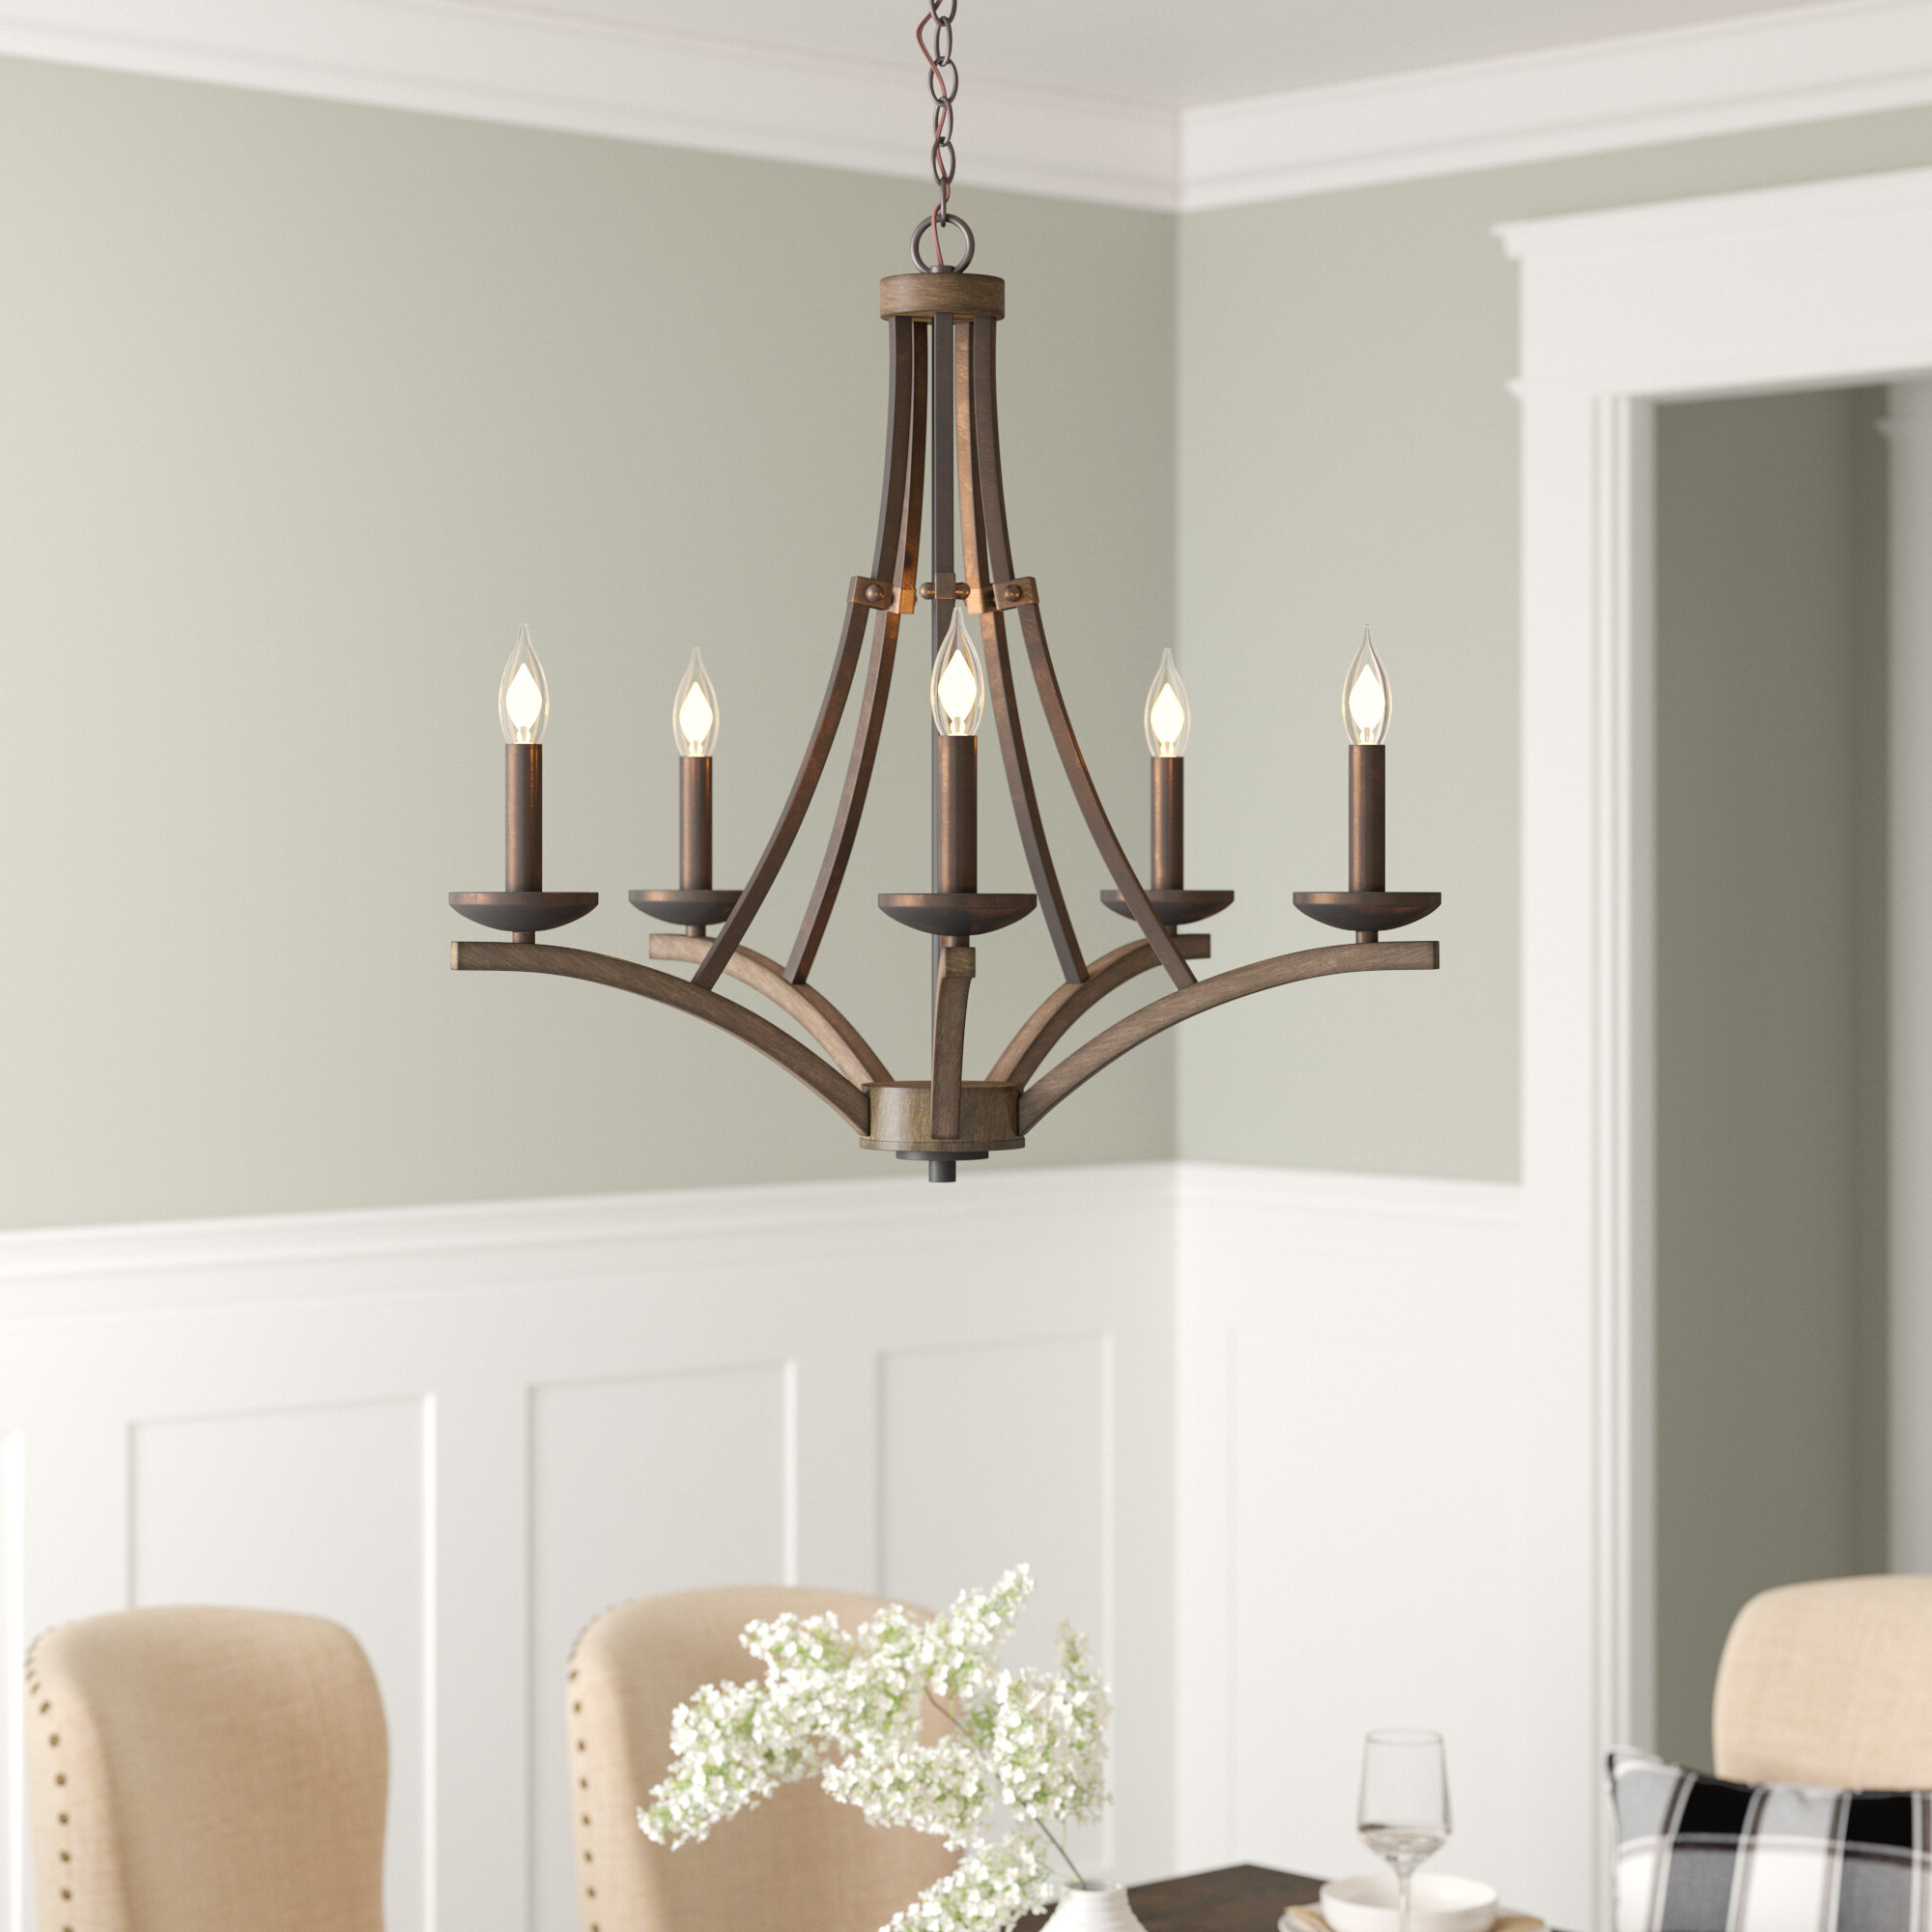 Most Recently Released Camilla 9 Light Candle Style Chandeliers In Wireman 5 Light Candle Style Chandelier (View 11 of 25)